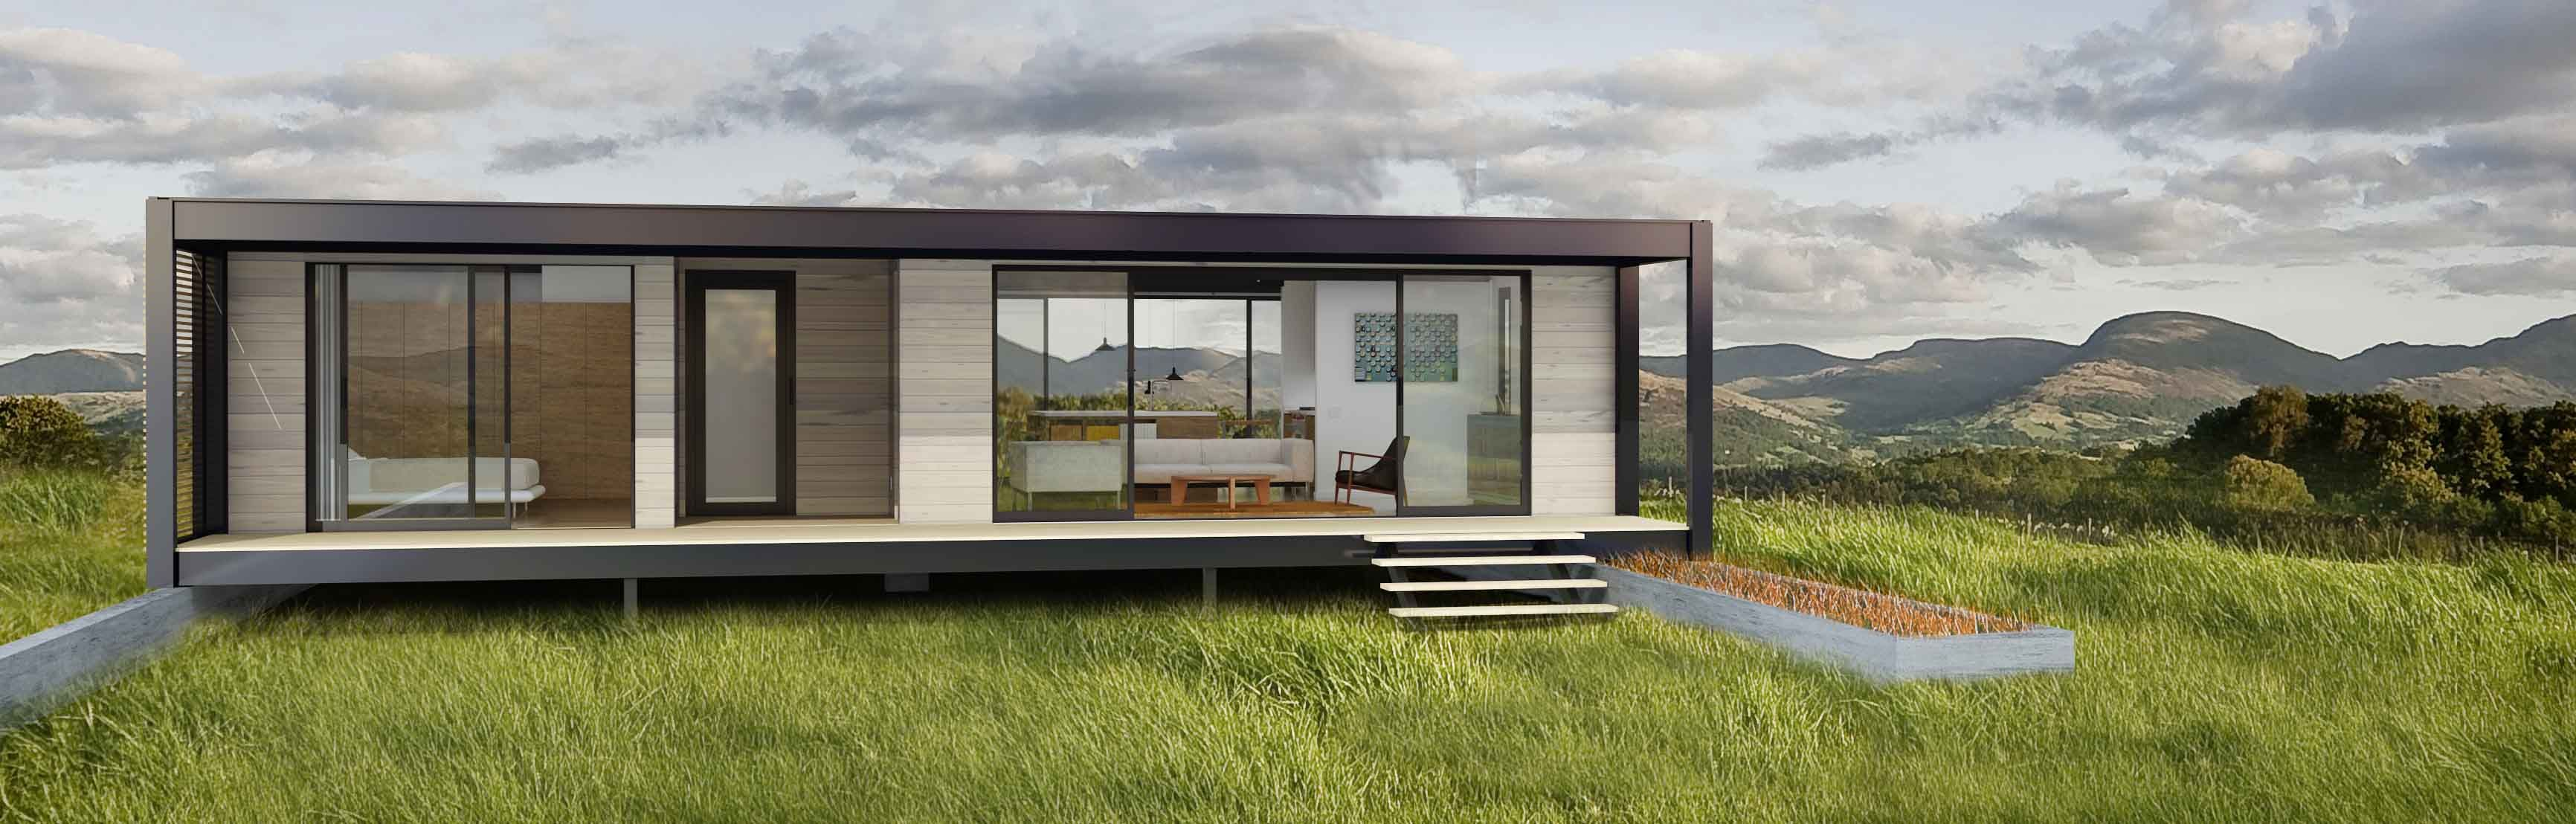 The excellent prefab homes affordable awesome ideas for for Modern container home designs